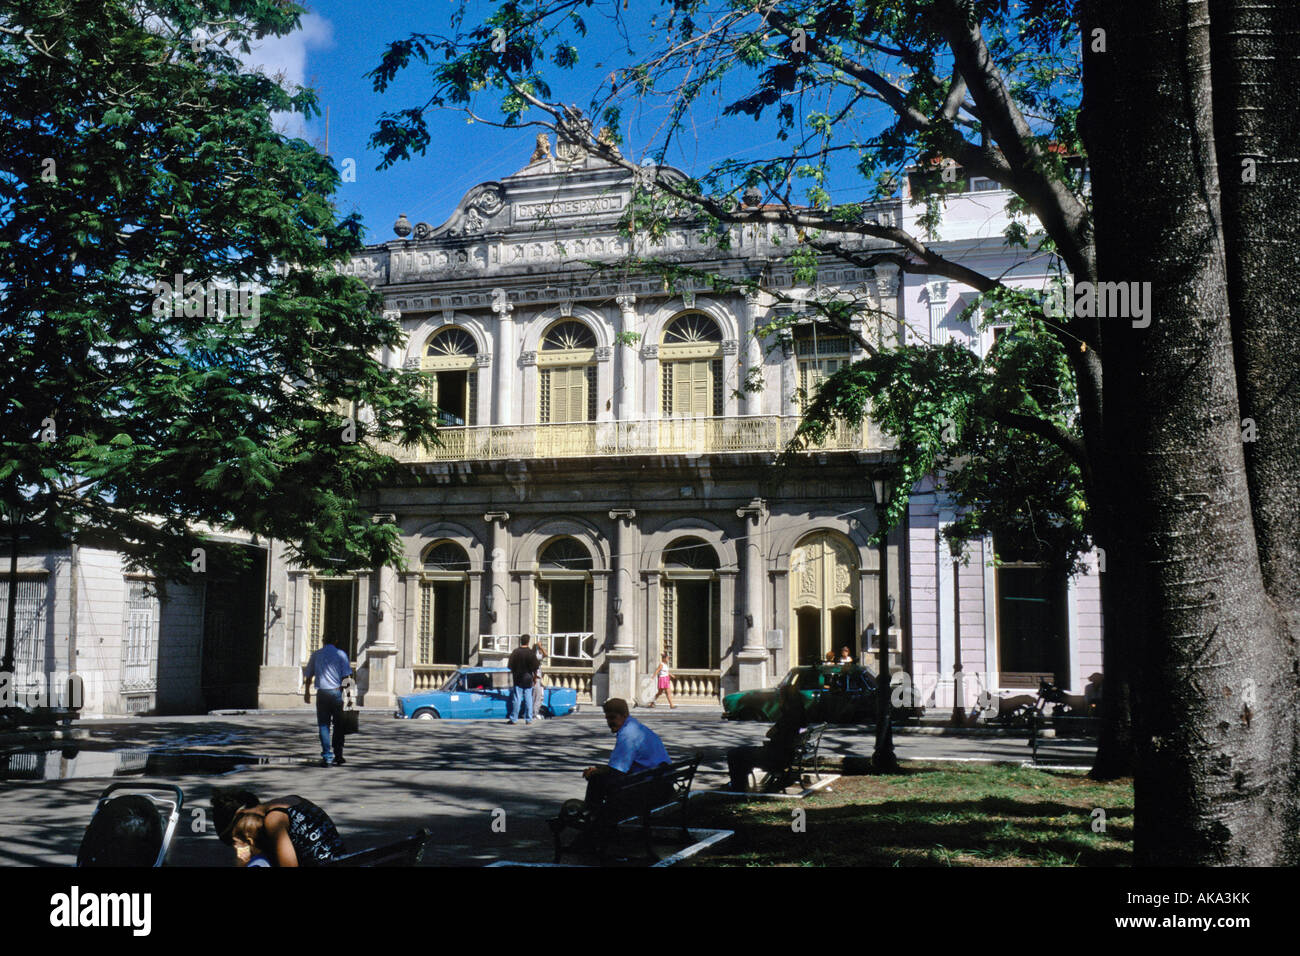 Former Casino Español now a hotel on Parque Libertad Liberty Park in Matanzas Cuba - Stock Image